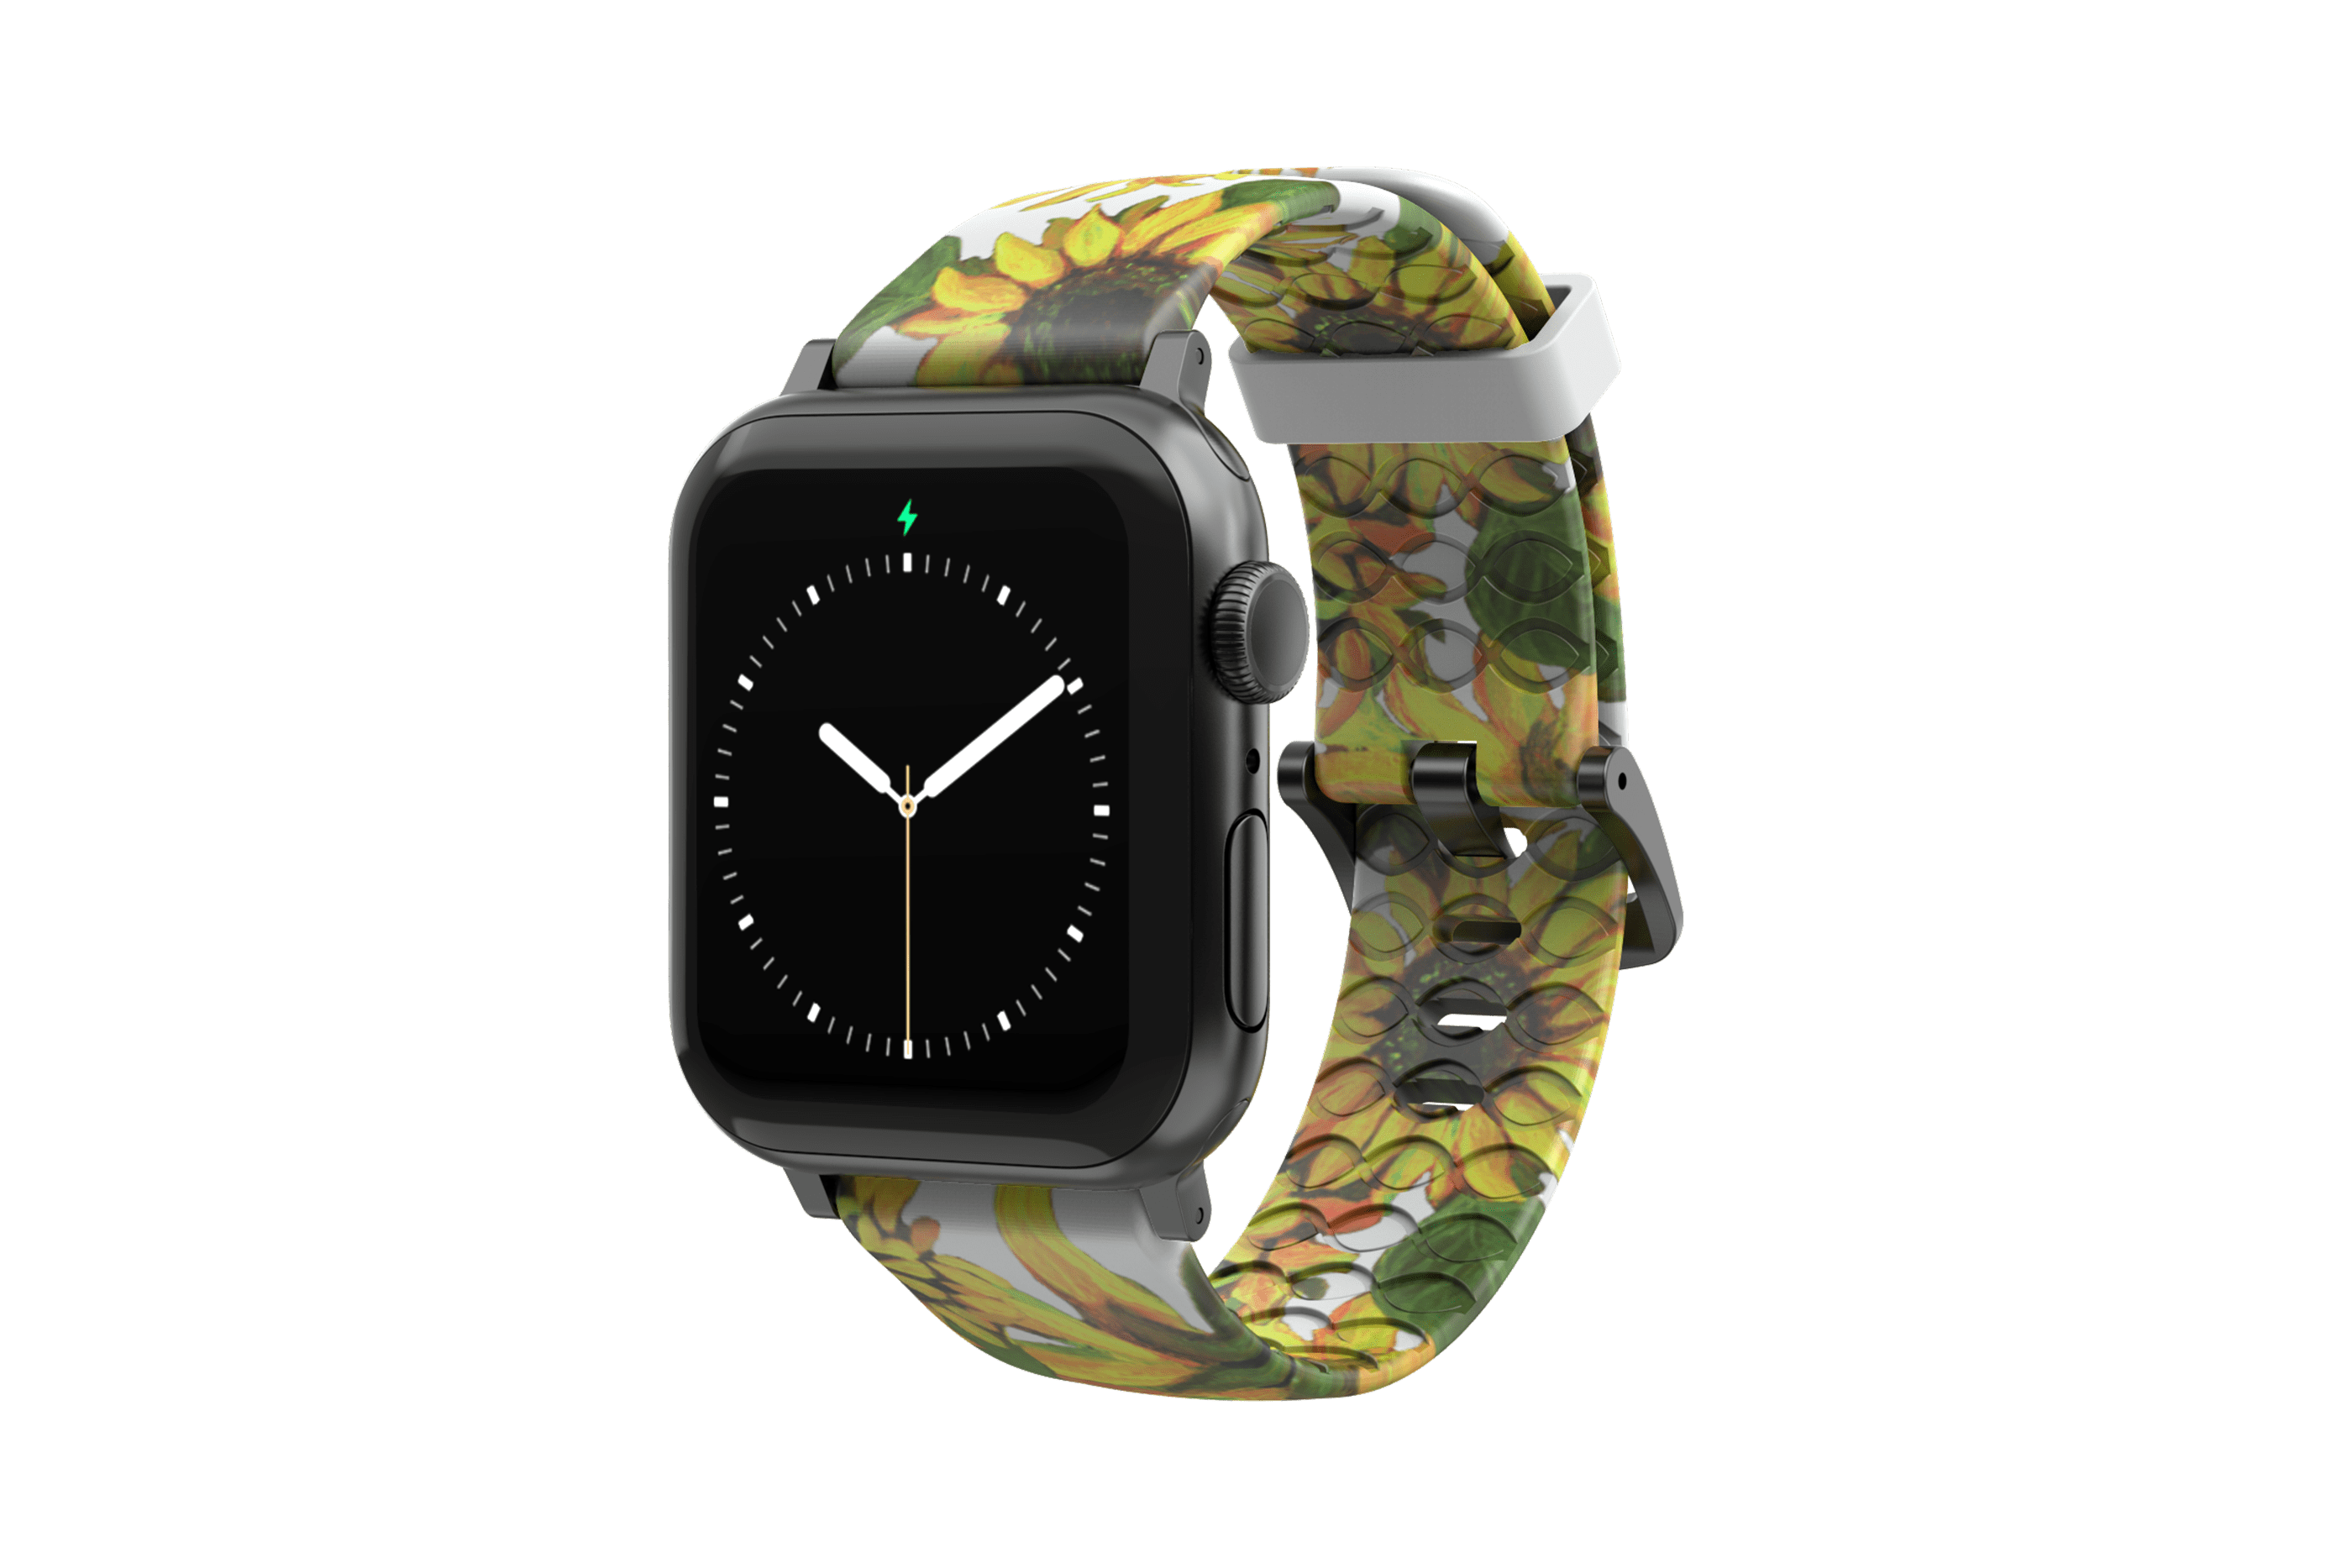 Sunflower Apple Watch Band with gray hardware viewed front on